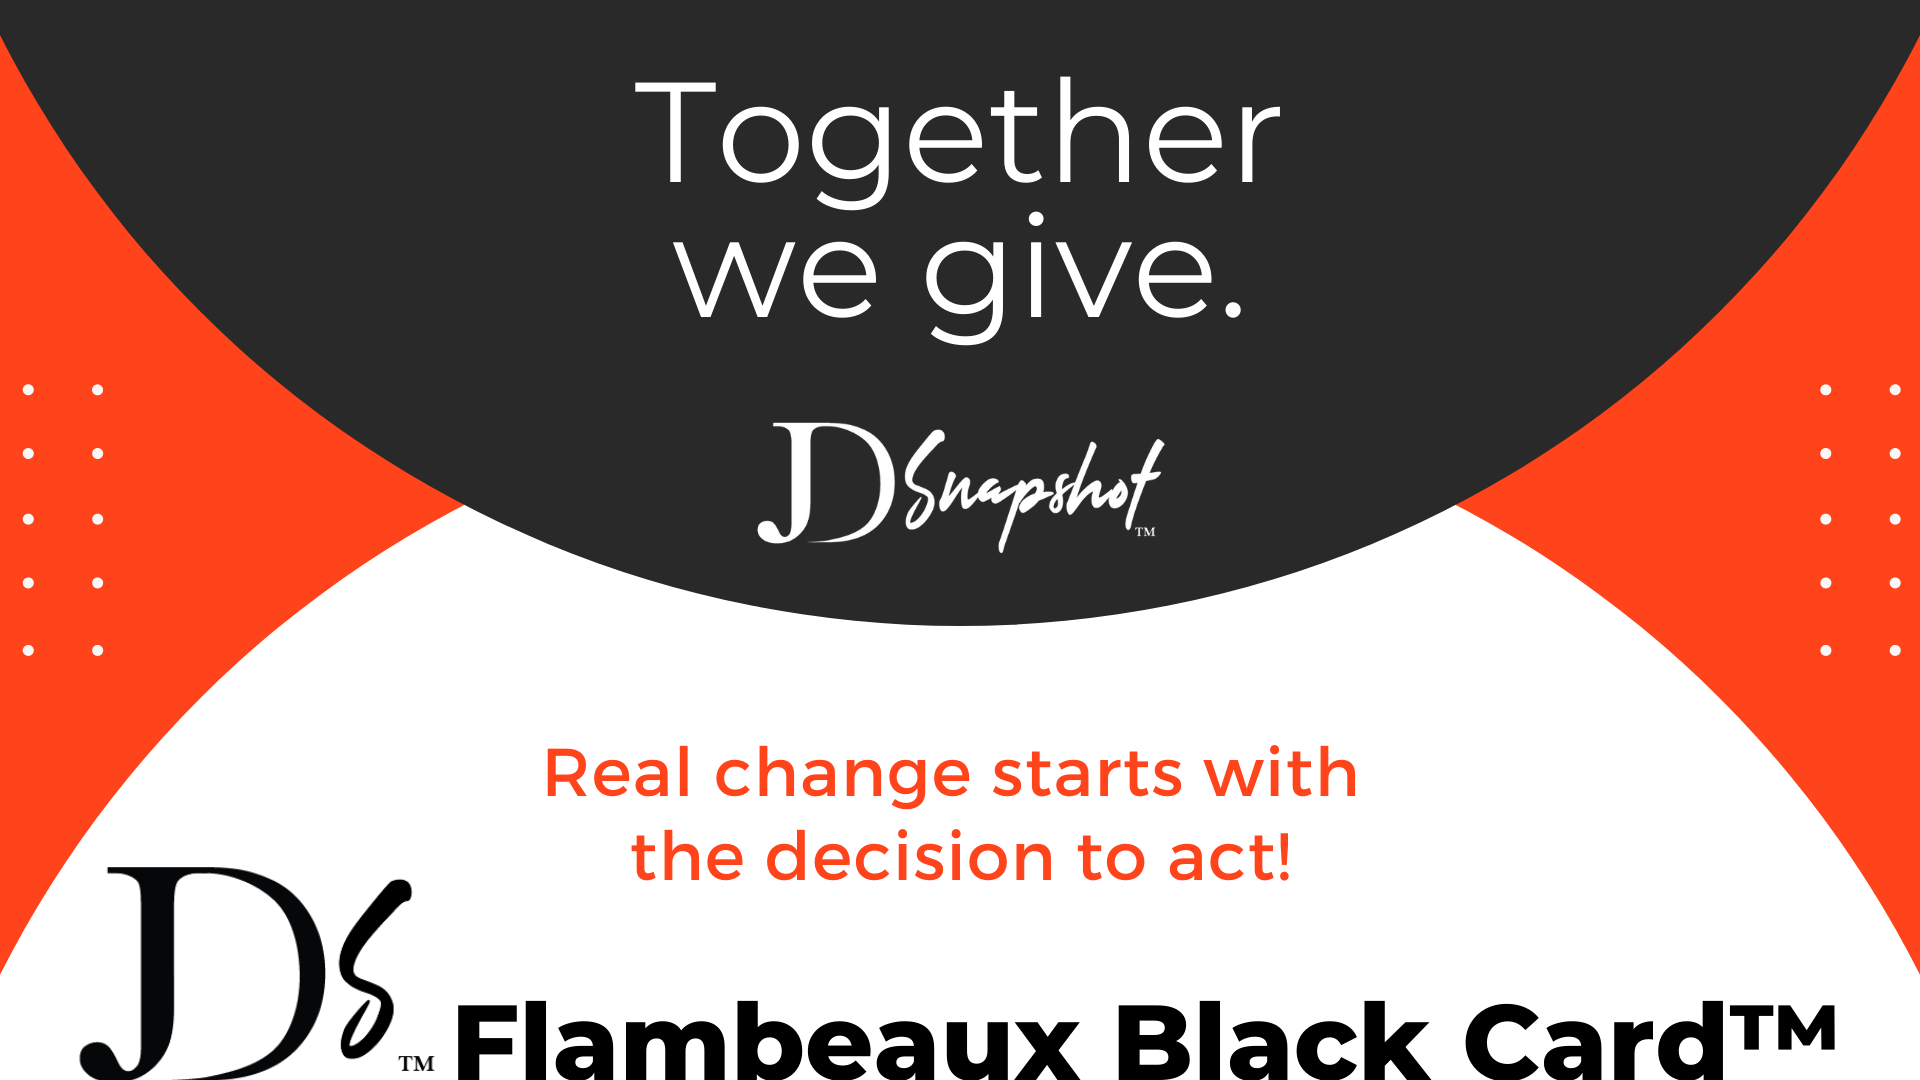 Together we give. JD Snapshot. Real change starts with the decision to act! Donate to the Flambeaux Black Card Project.